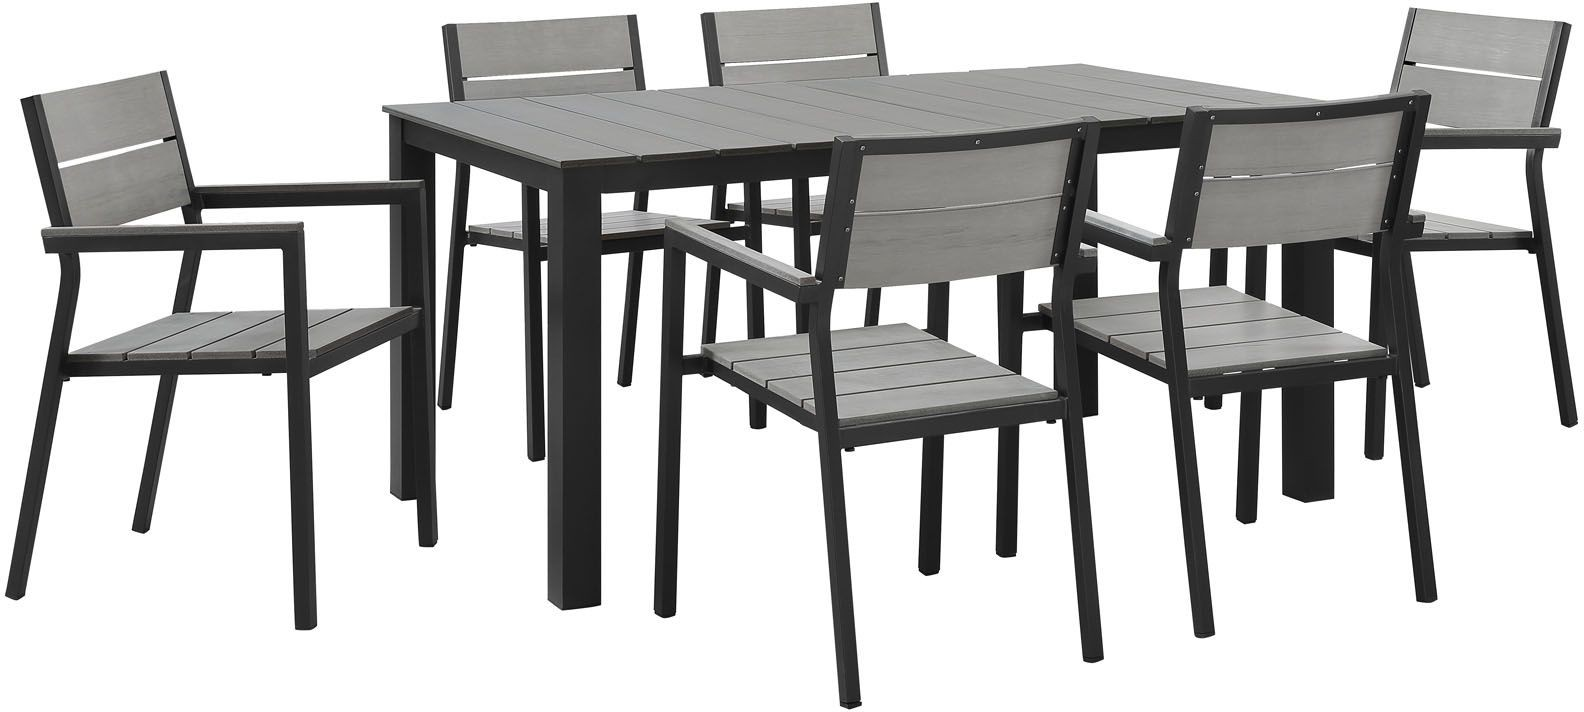 Maine Brown Gray 7 Piece Outdoor Patio Dining Set EEI 1749 BRN GRY SET Rene